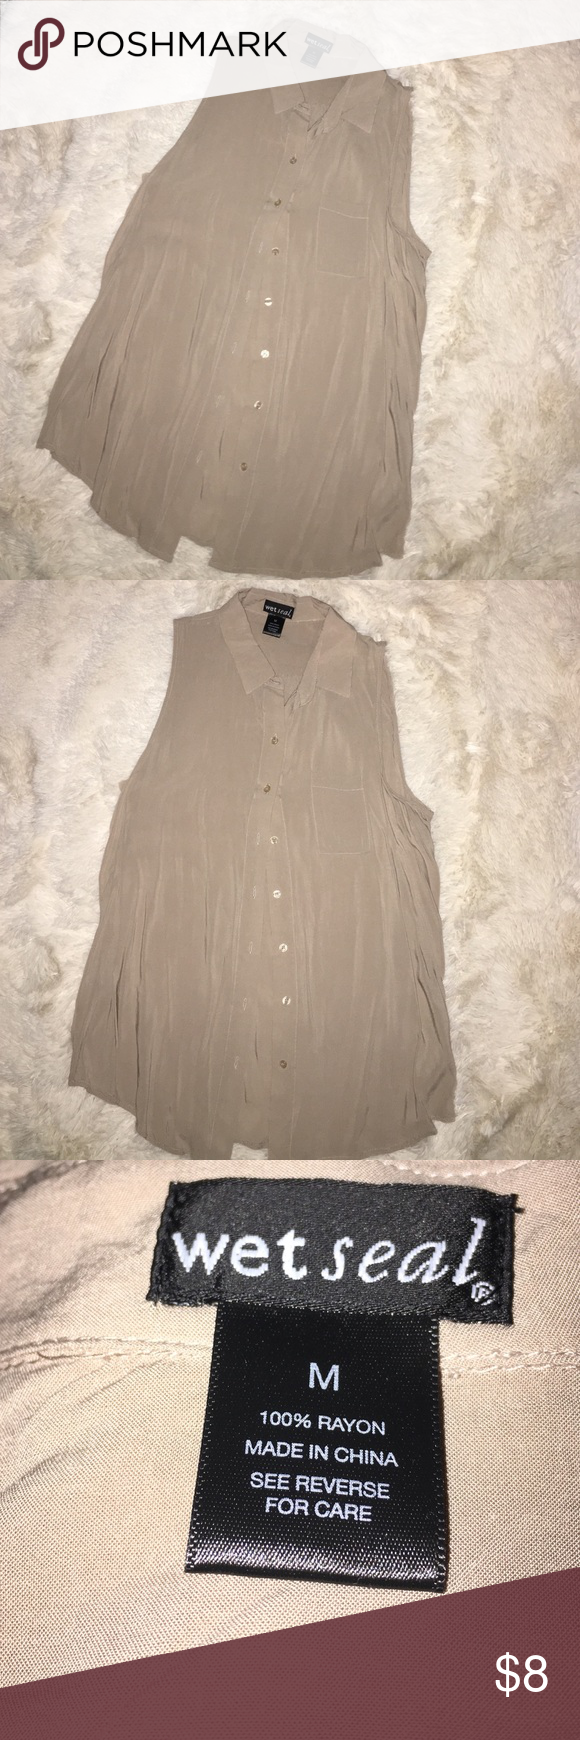 Wet Seal Womens top Blouse size Medium Tan beige color preowned good condition Button down shirt Wet Seal Tops Button Down Shirts